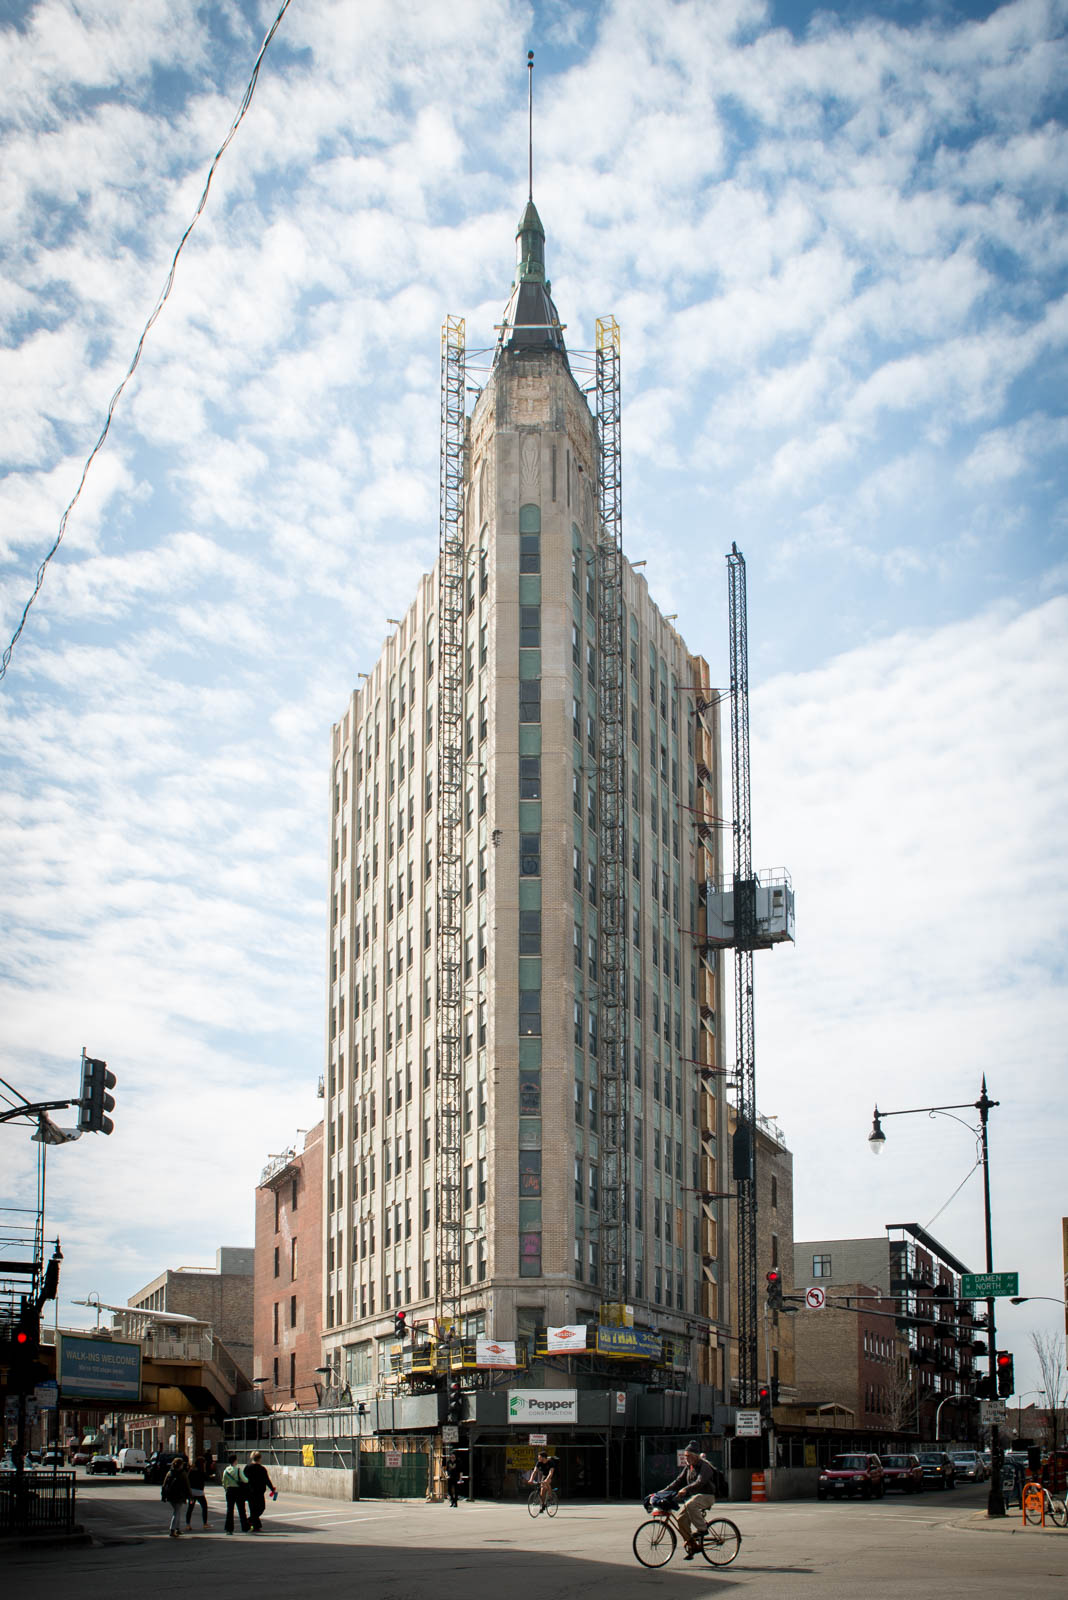 Northwest Tower, 1600 N Milwaukee Ave